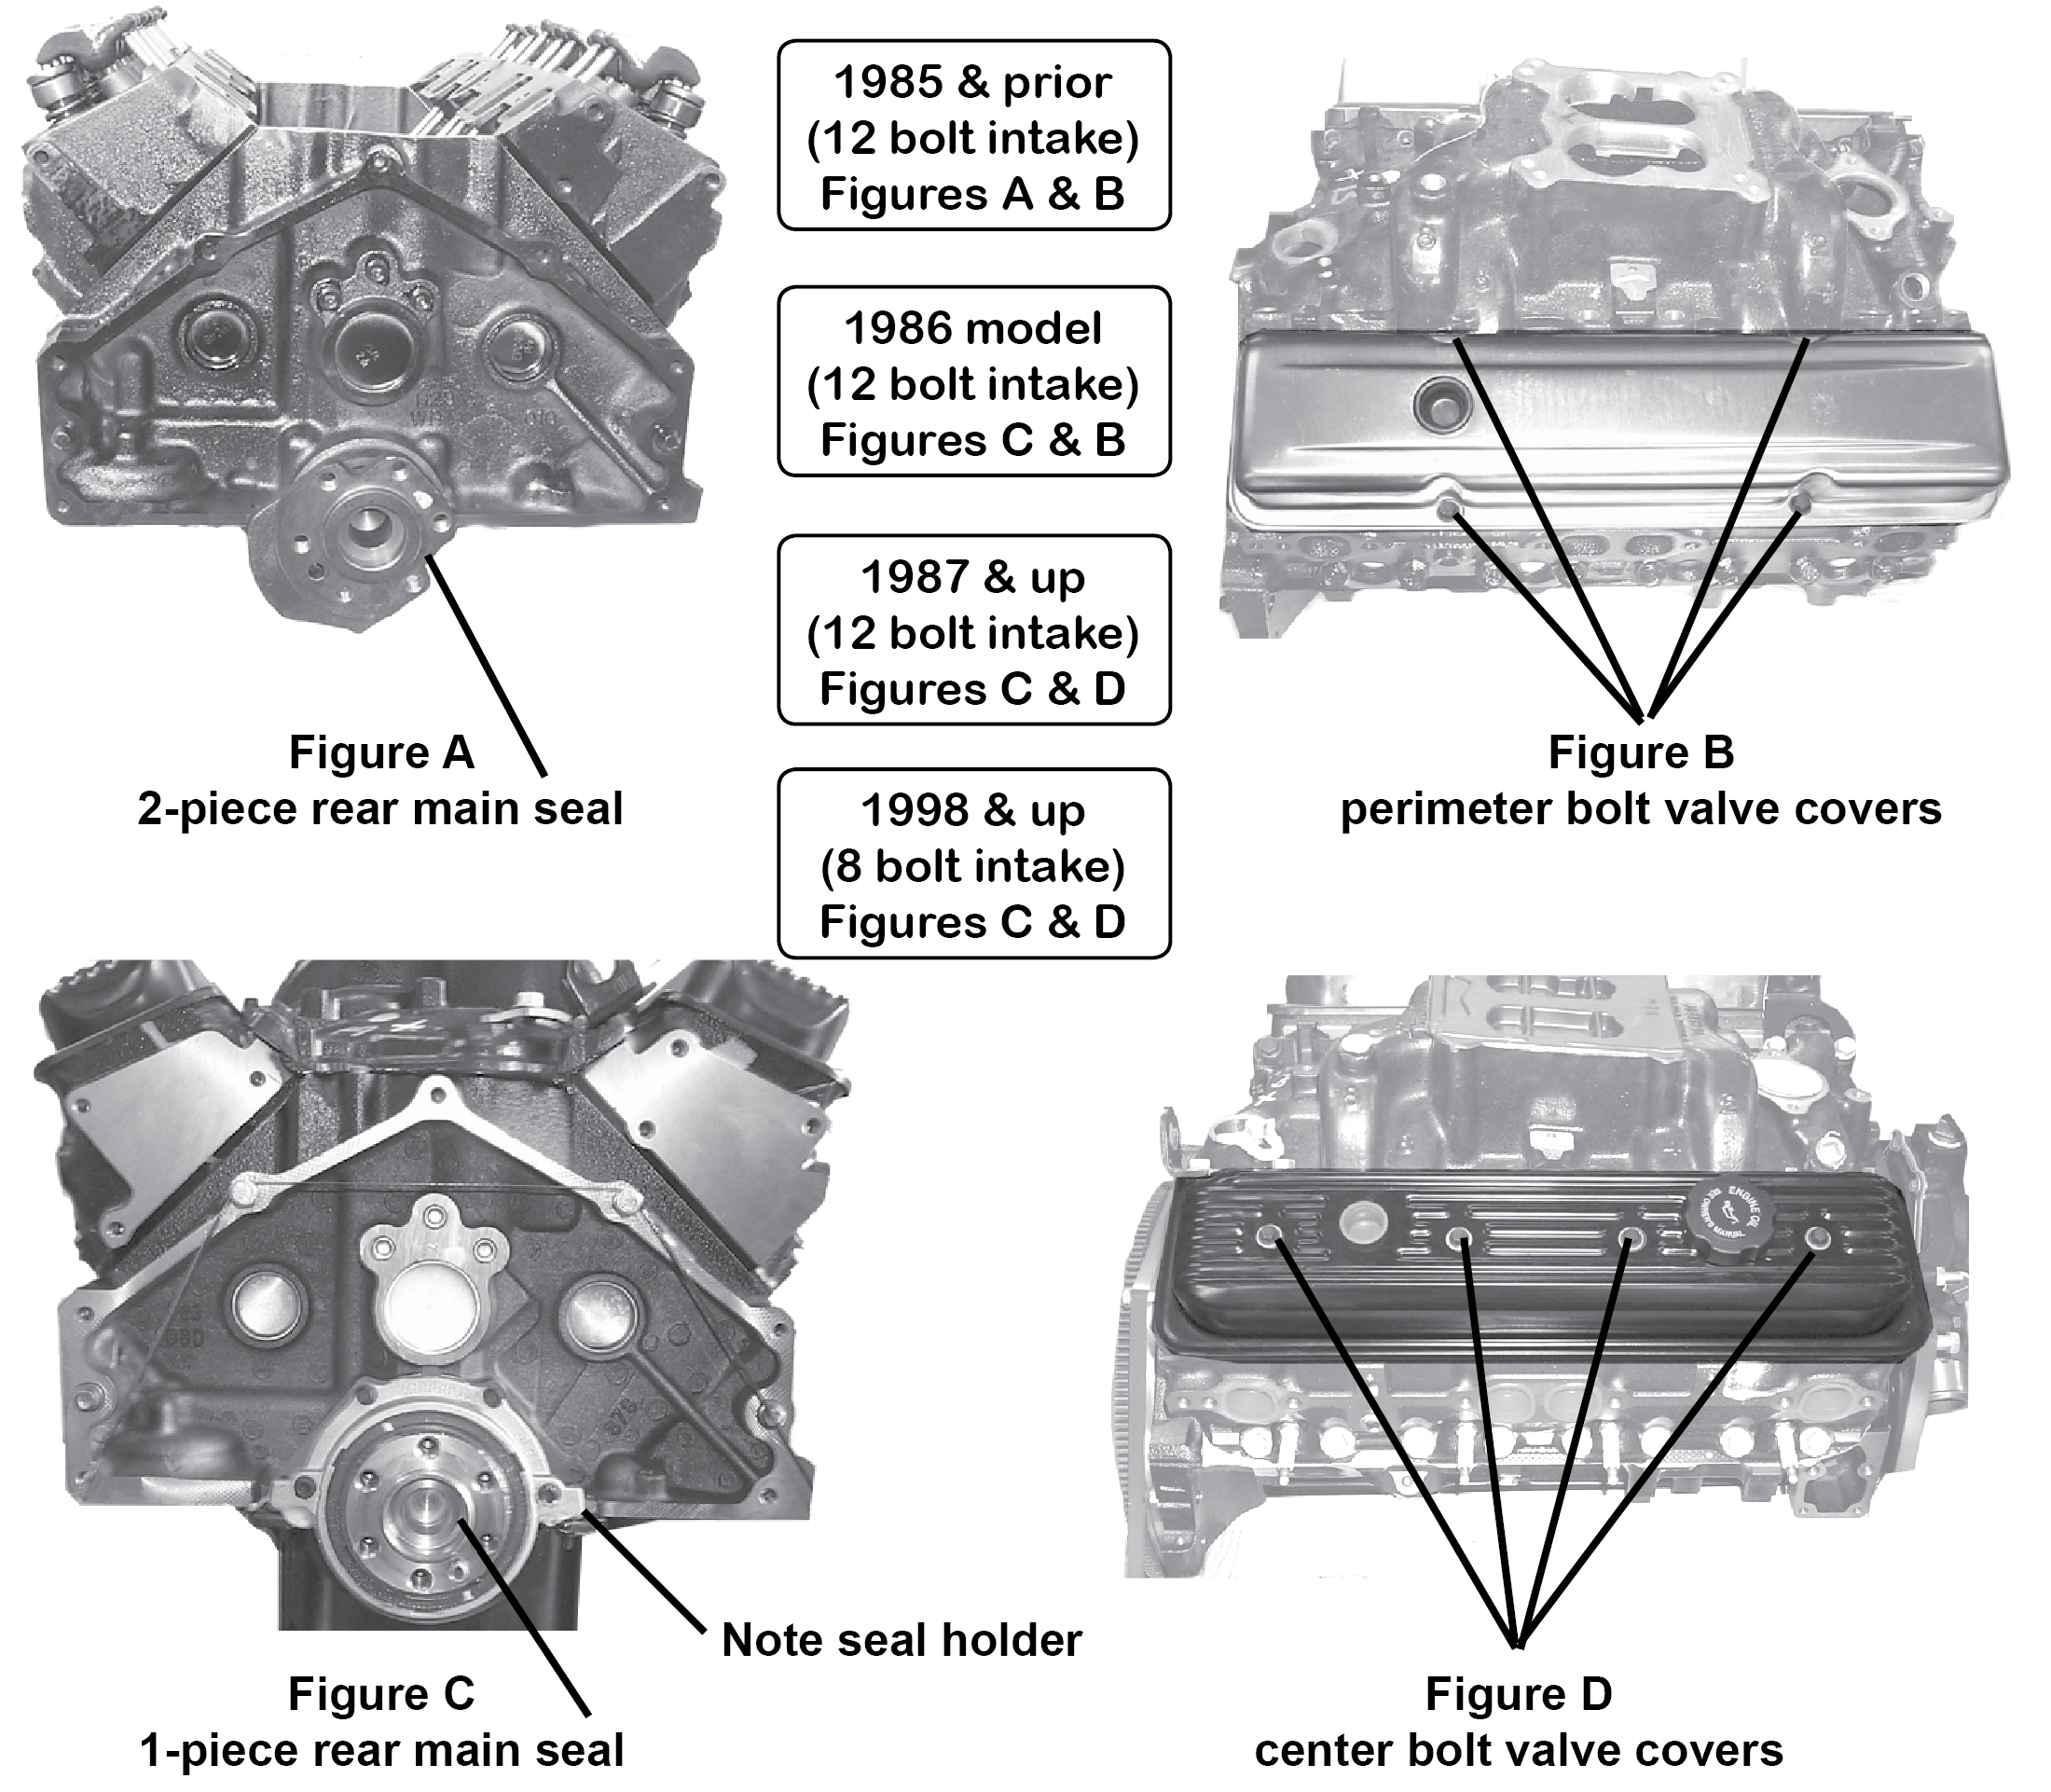 When Did They Change The Gm Small Block Engine Ebasicpower D Evolution